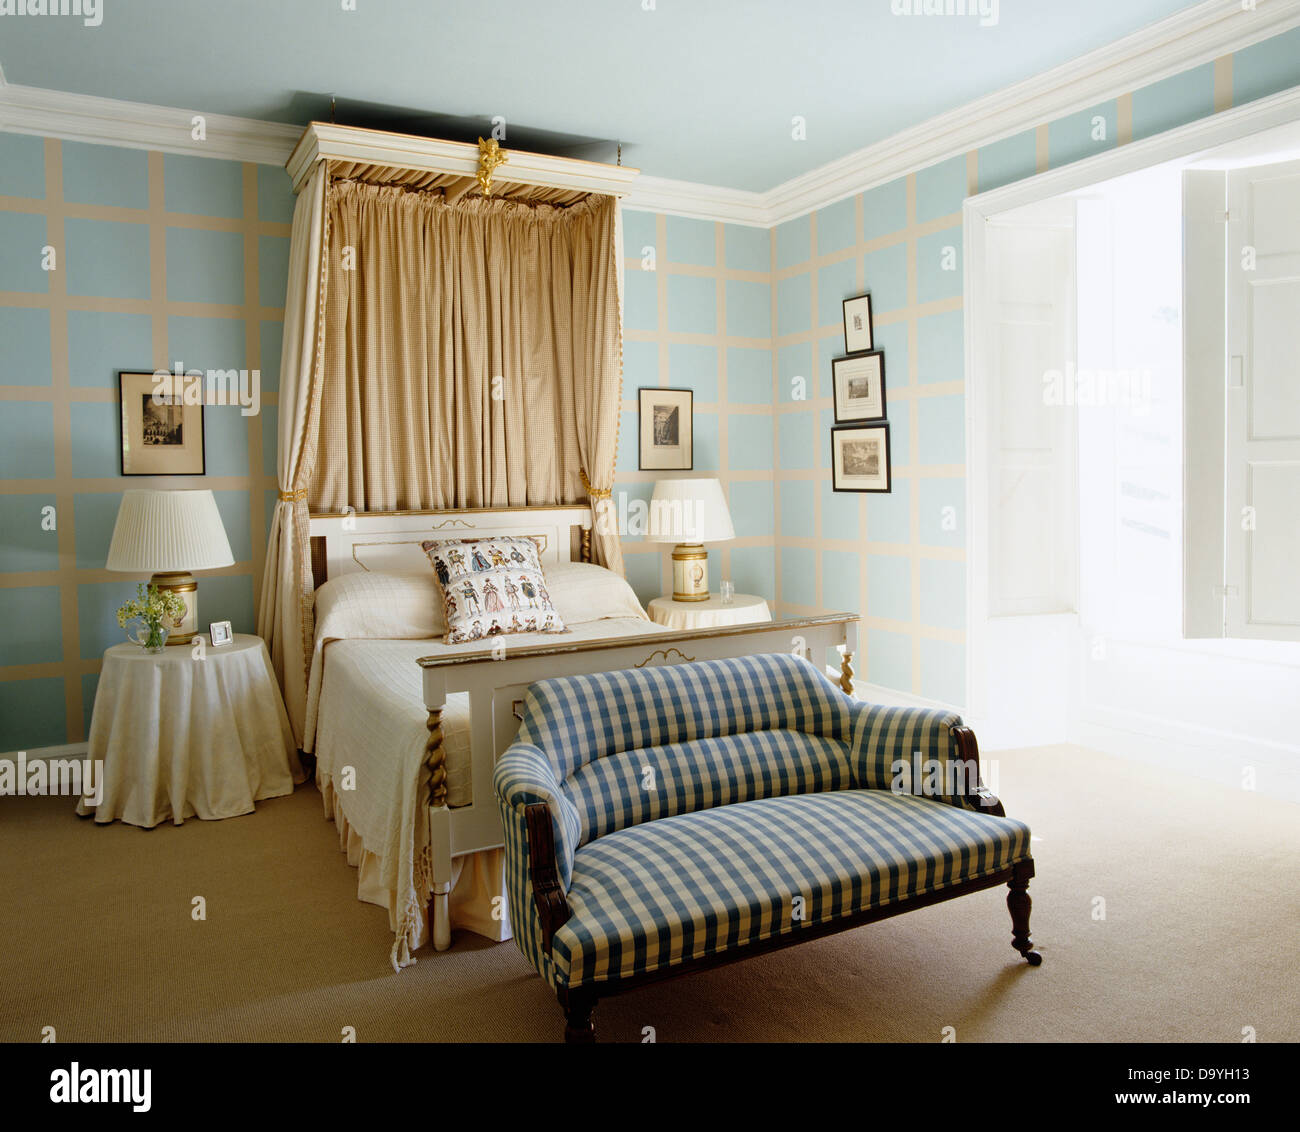 Beige Silk Drapes On Canopy Above Bed In Pale Turquoise Bedroom With Stock Photo Alamy